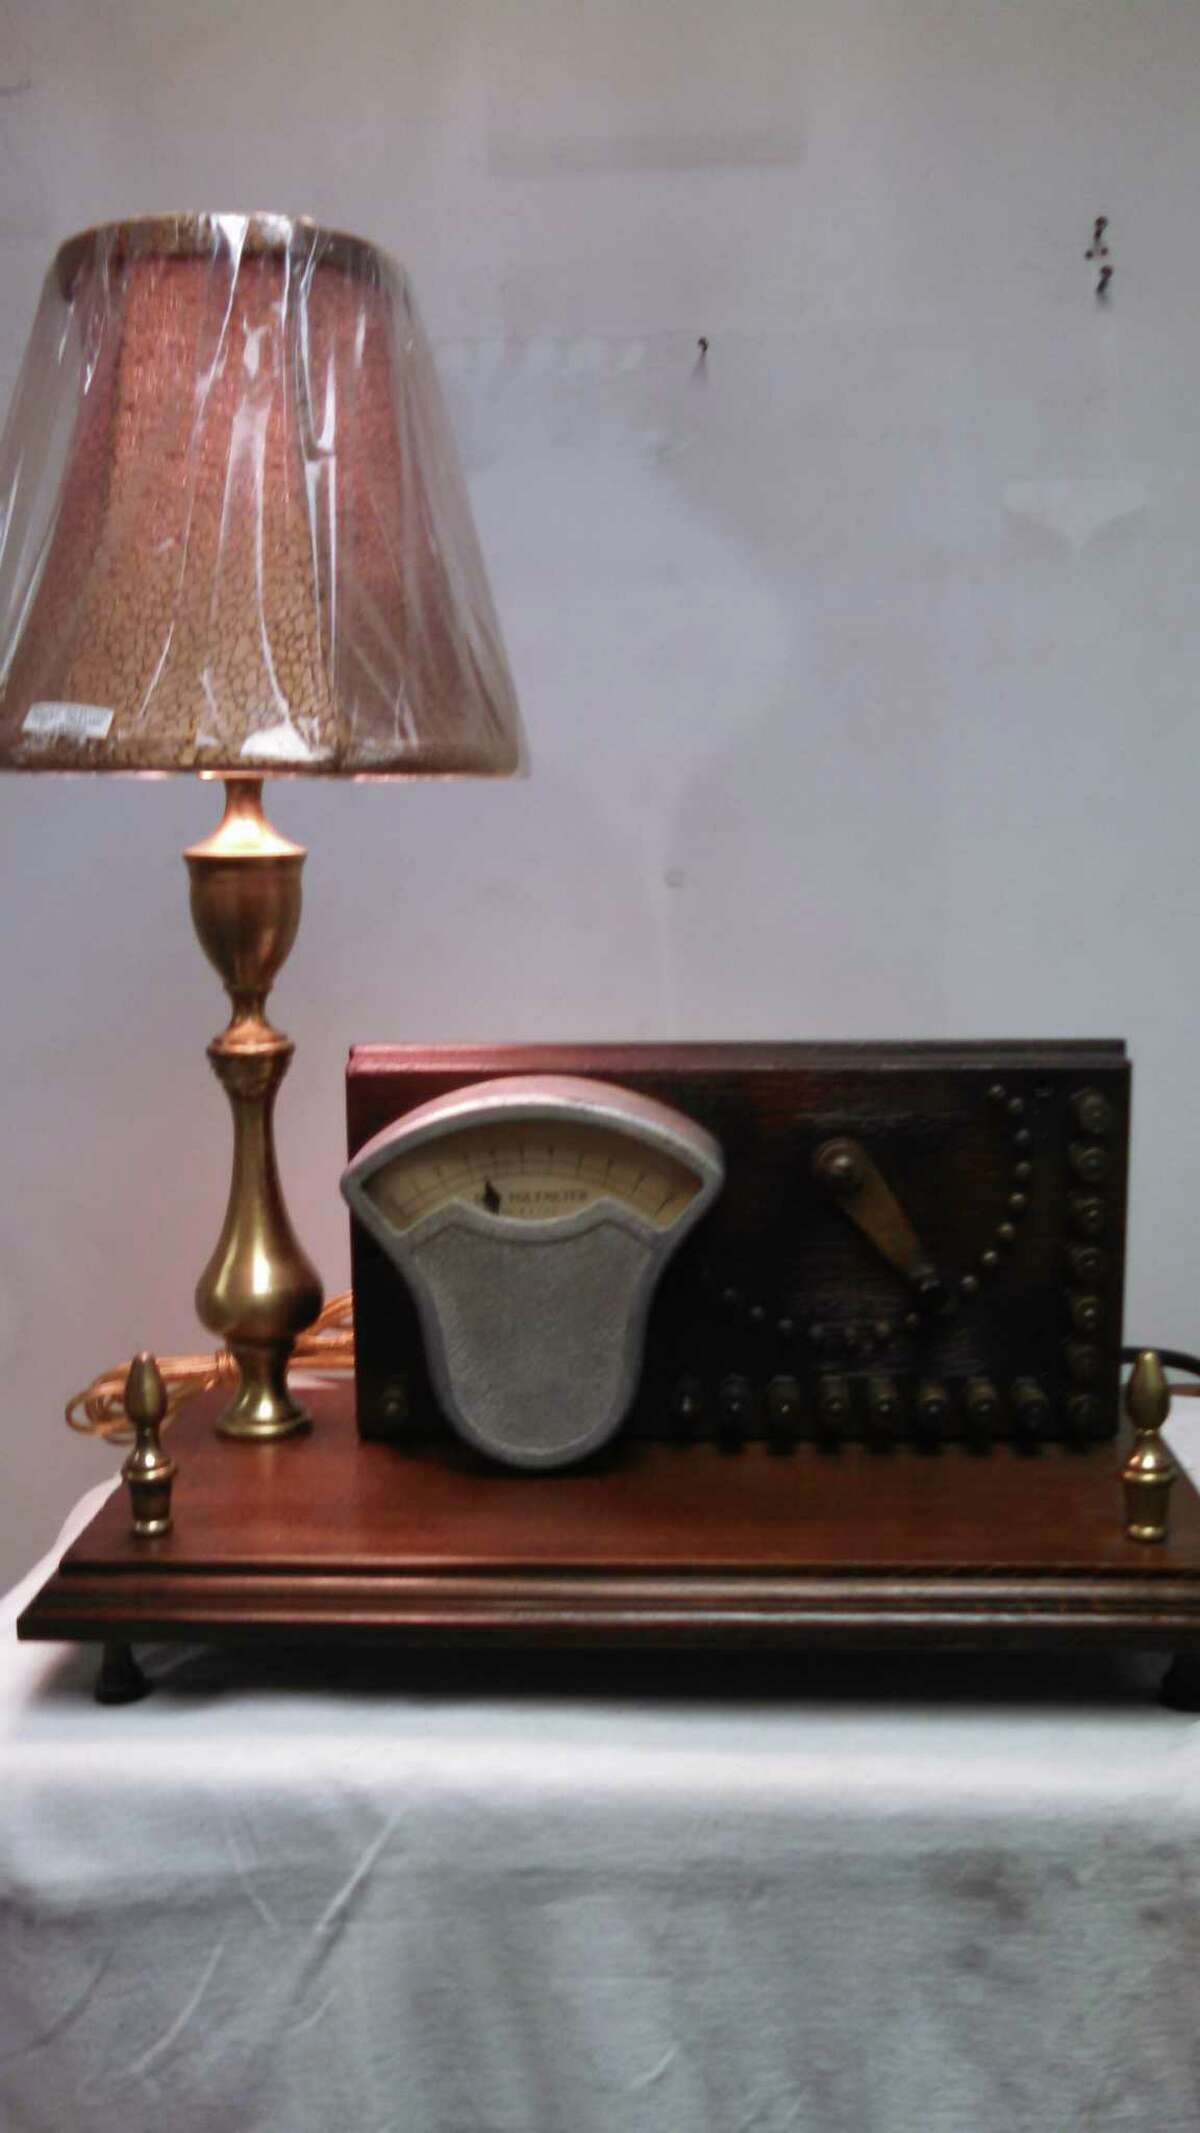 David Rosenberg, a part-time butcher and artist, loves to create lamps, clocks and other functional art out of junk.